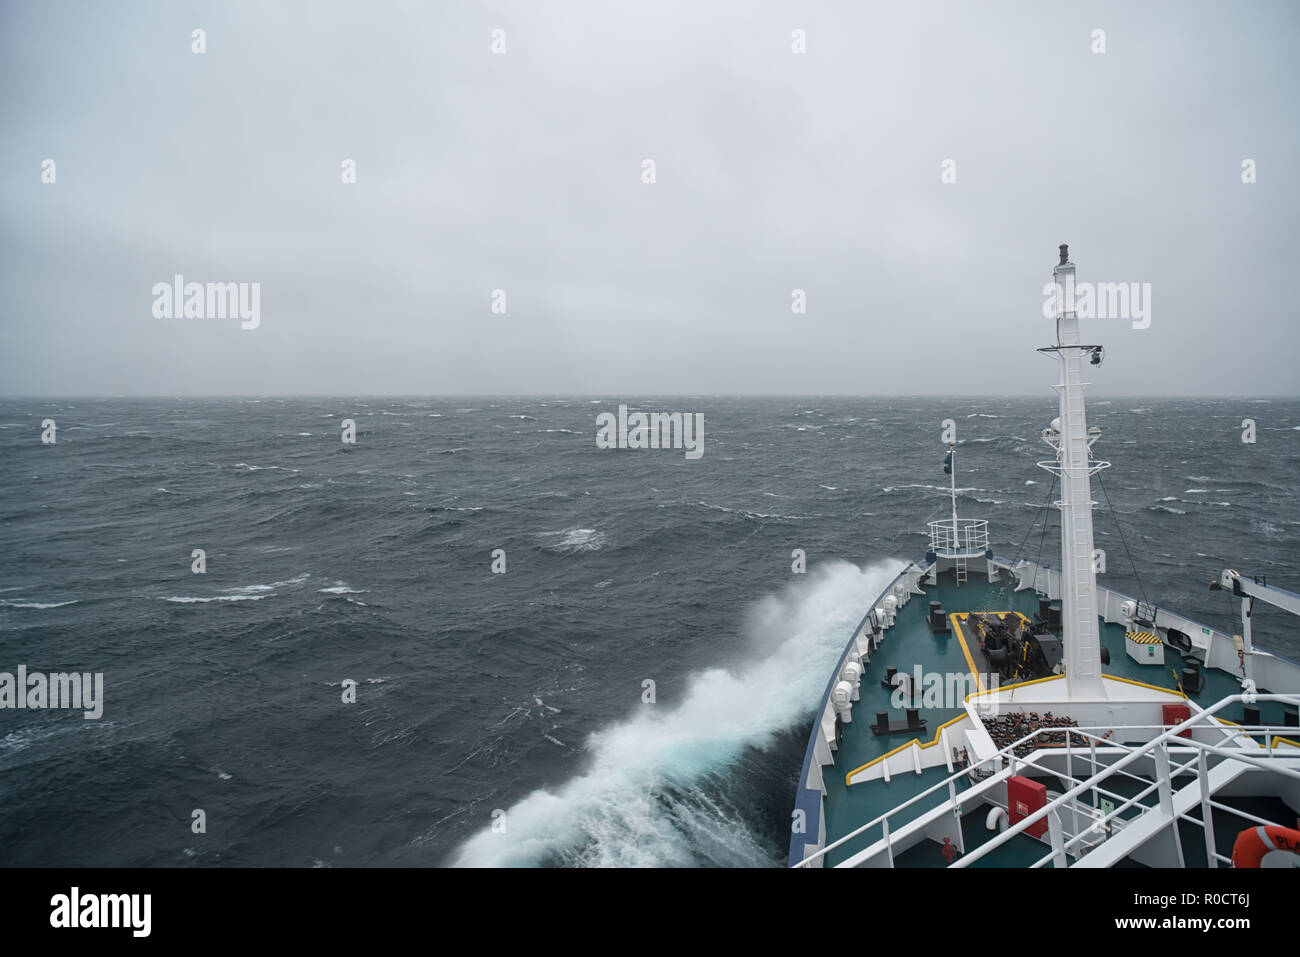 Ship cruising in storm and heavy seas crossing the Denmark Strait between Greenland and Iceland. Stock Photo